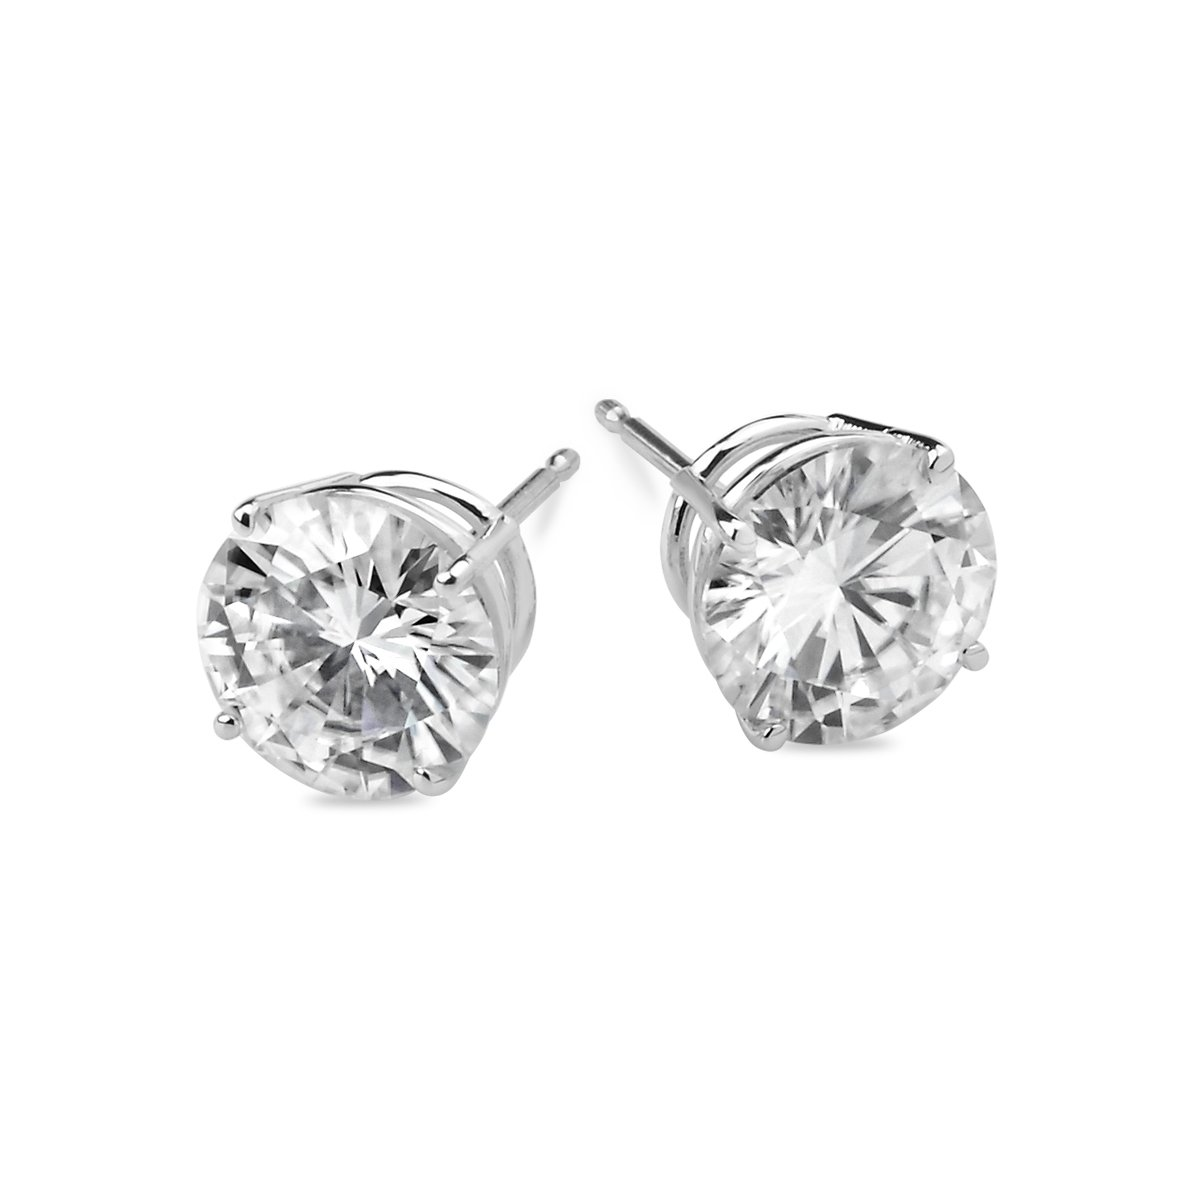 14k White Gold 5mm Round Forever Brilliant Moissanite Stud Earrings 1.0cttw DEW By Charles & Colvard